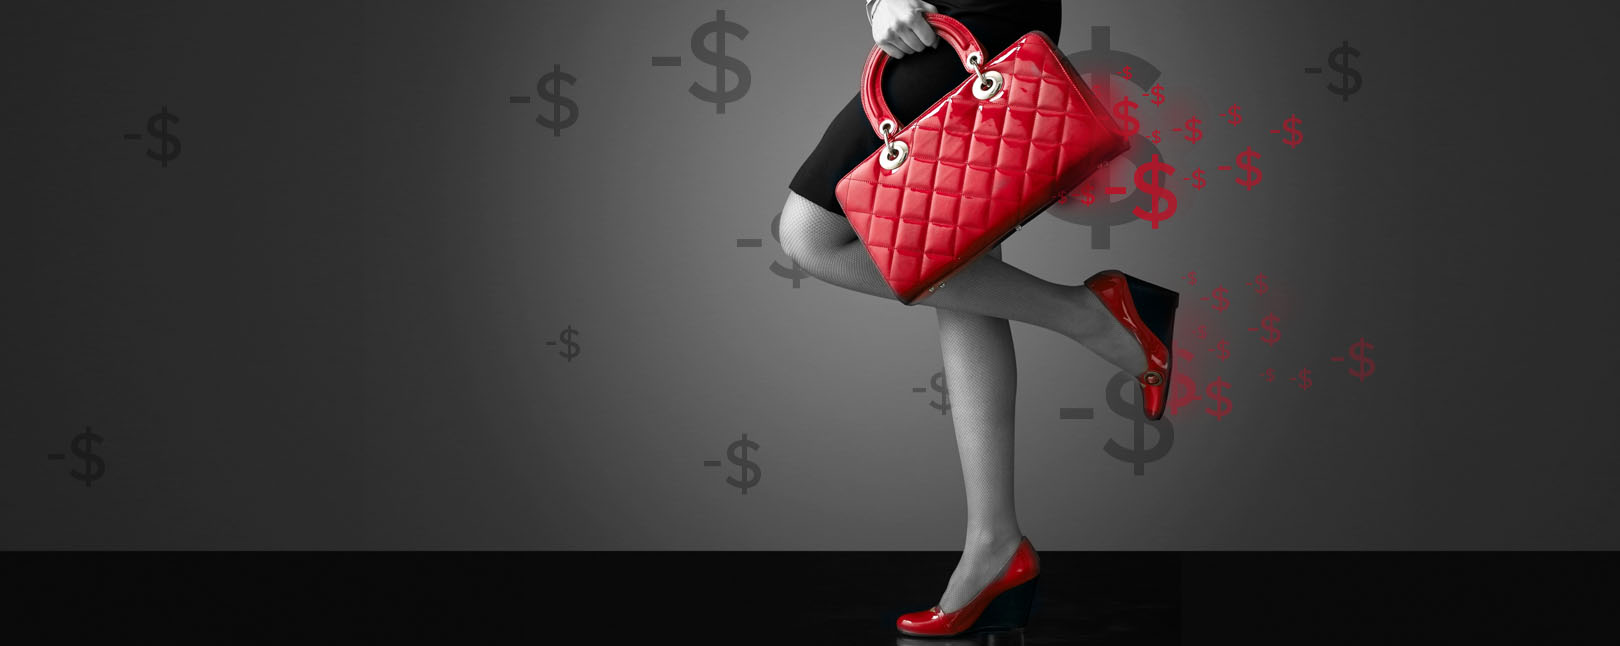 Luxury Goods Fraud